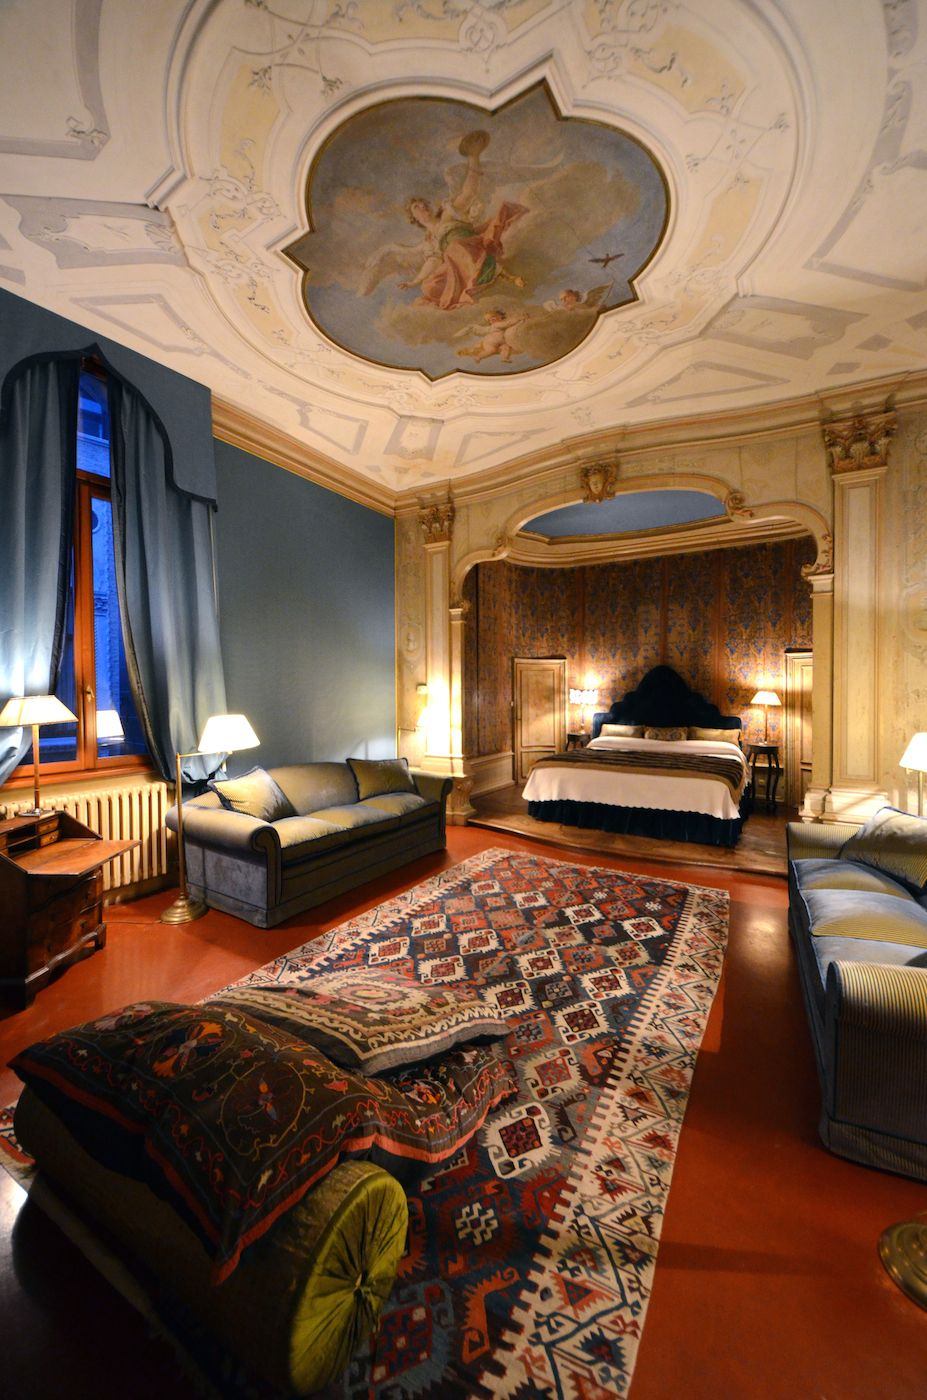 the master bedroom at night: charming, romantic and luxurious